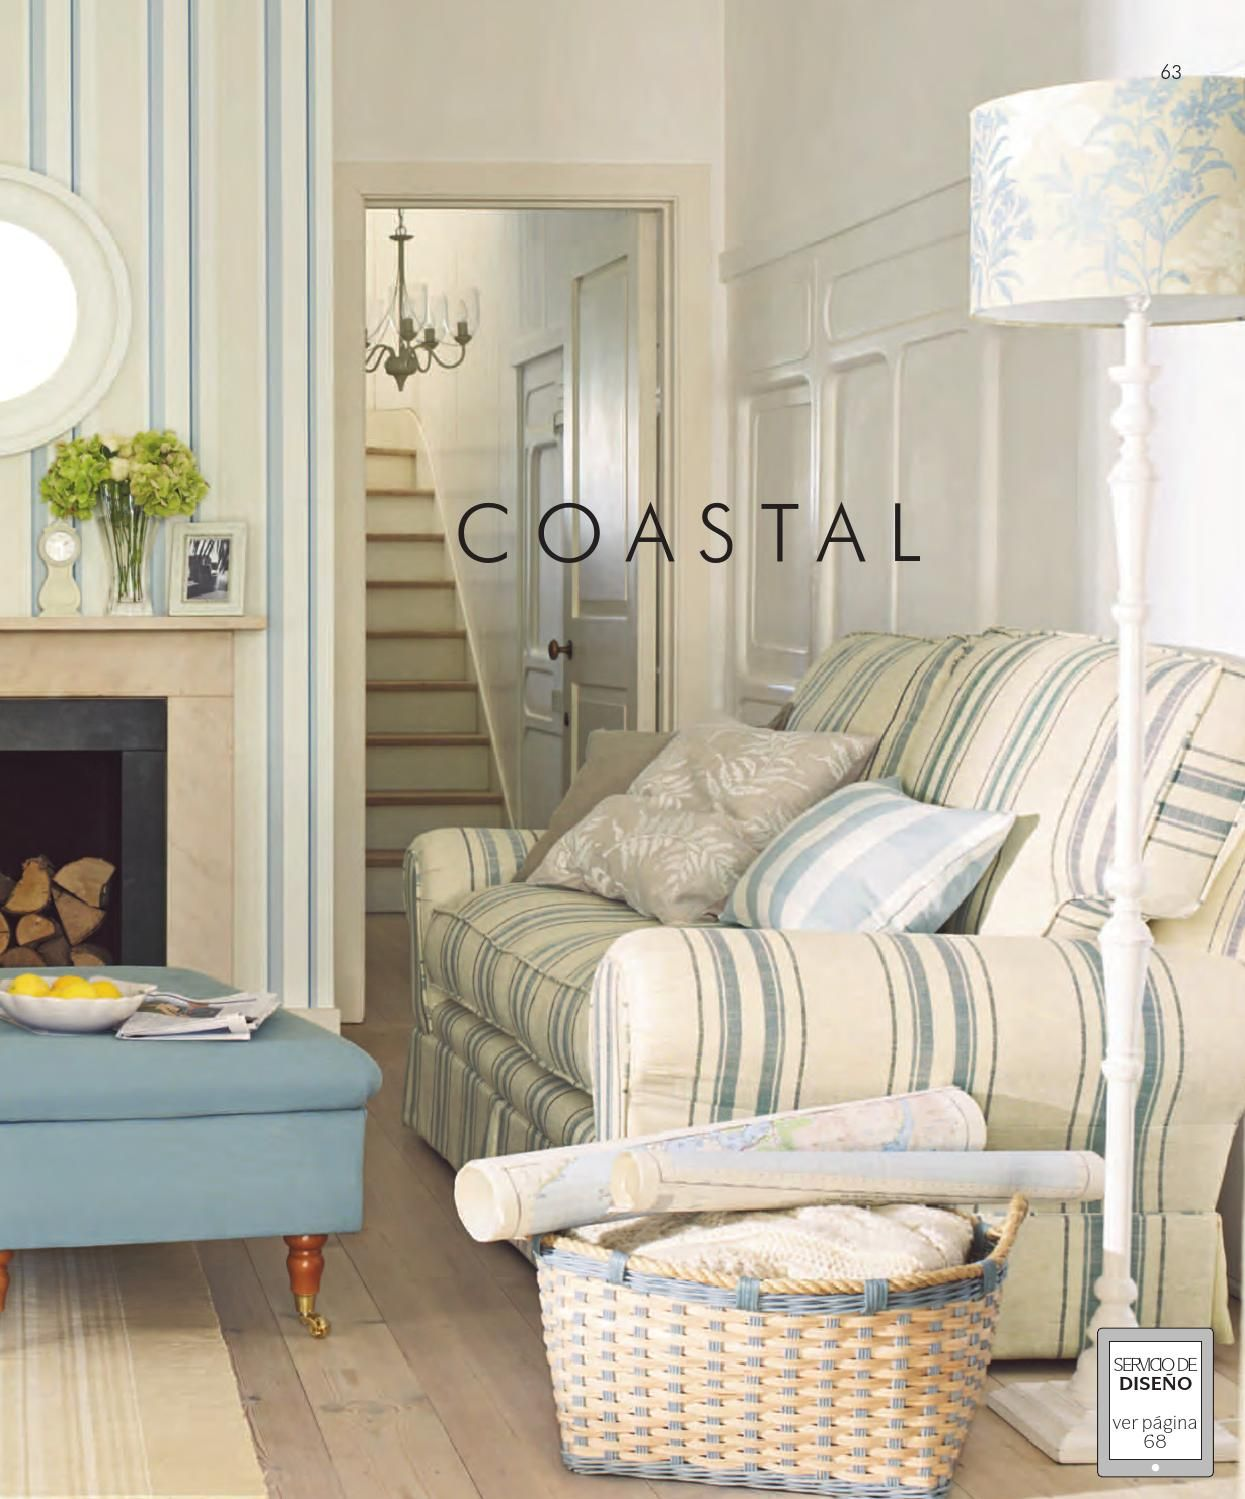 Laura Ashley Hogar - Primavera Verano 2014 | Laura ashley, Coastal ...